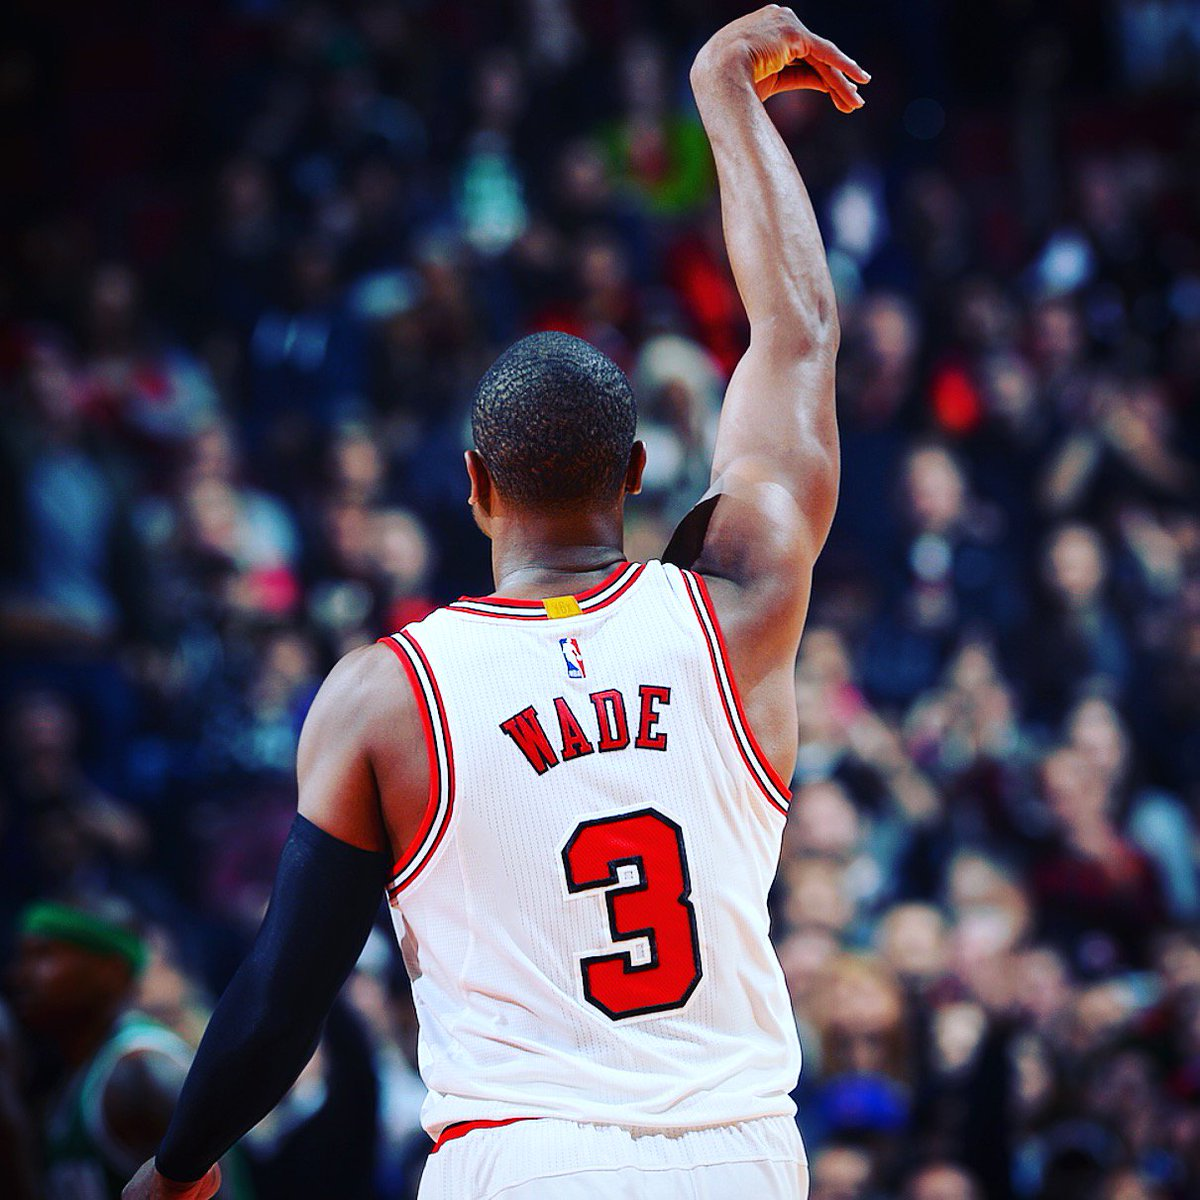 """@chicagobulls: 1 RT = 1 VOTE  Come on #BullsNation, let's send @DwyaneWade to the All-Star game! #NBAVote https://t.co/hGe6XDbxM4"""